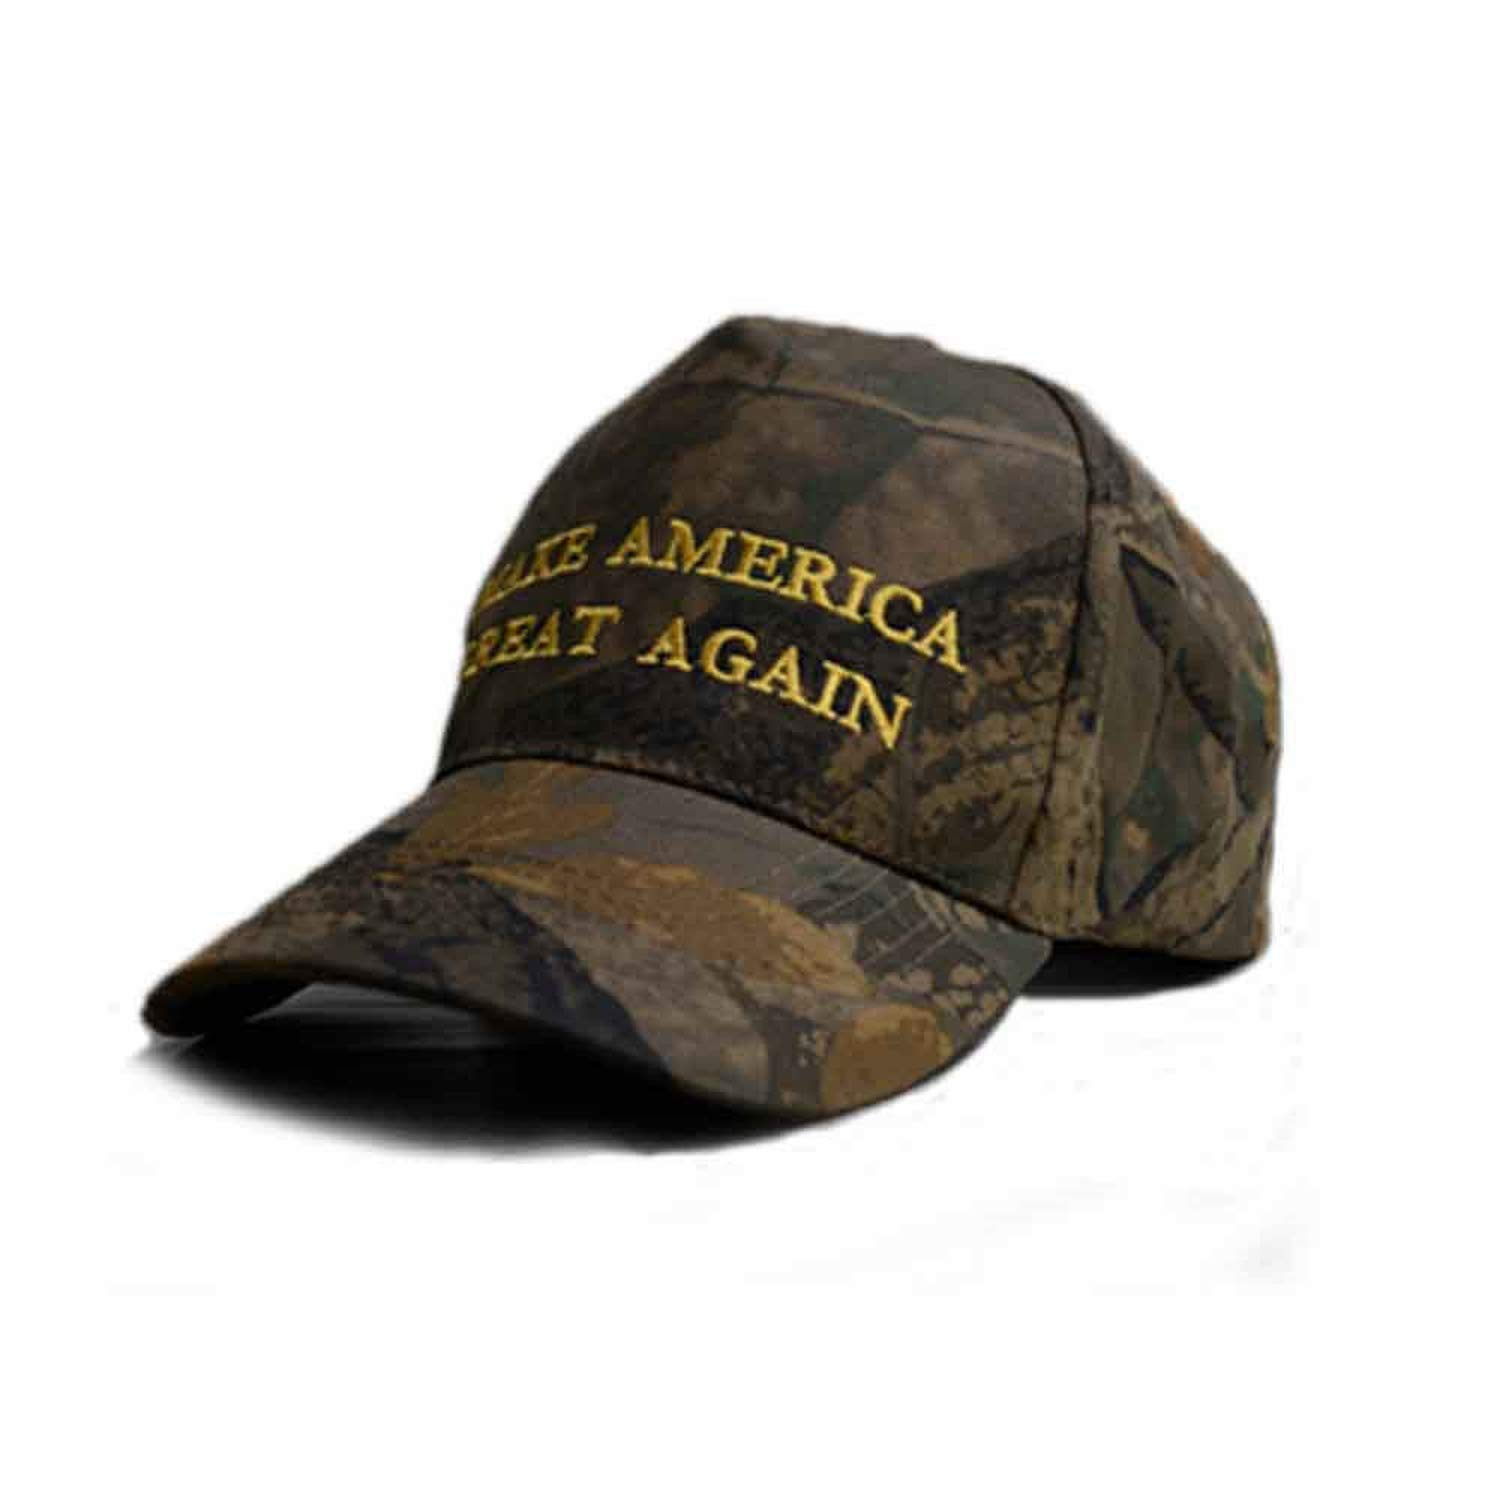 Make America Great Again Donald Trump Republican MAGA Embroidered America President hat Adjustable Mesh Cap